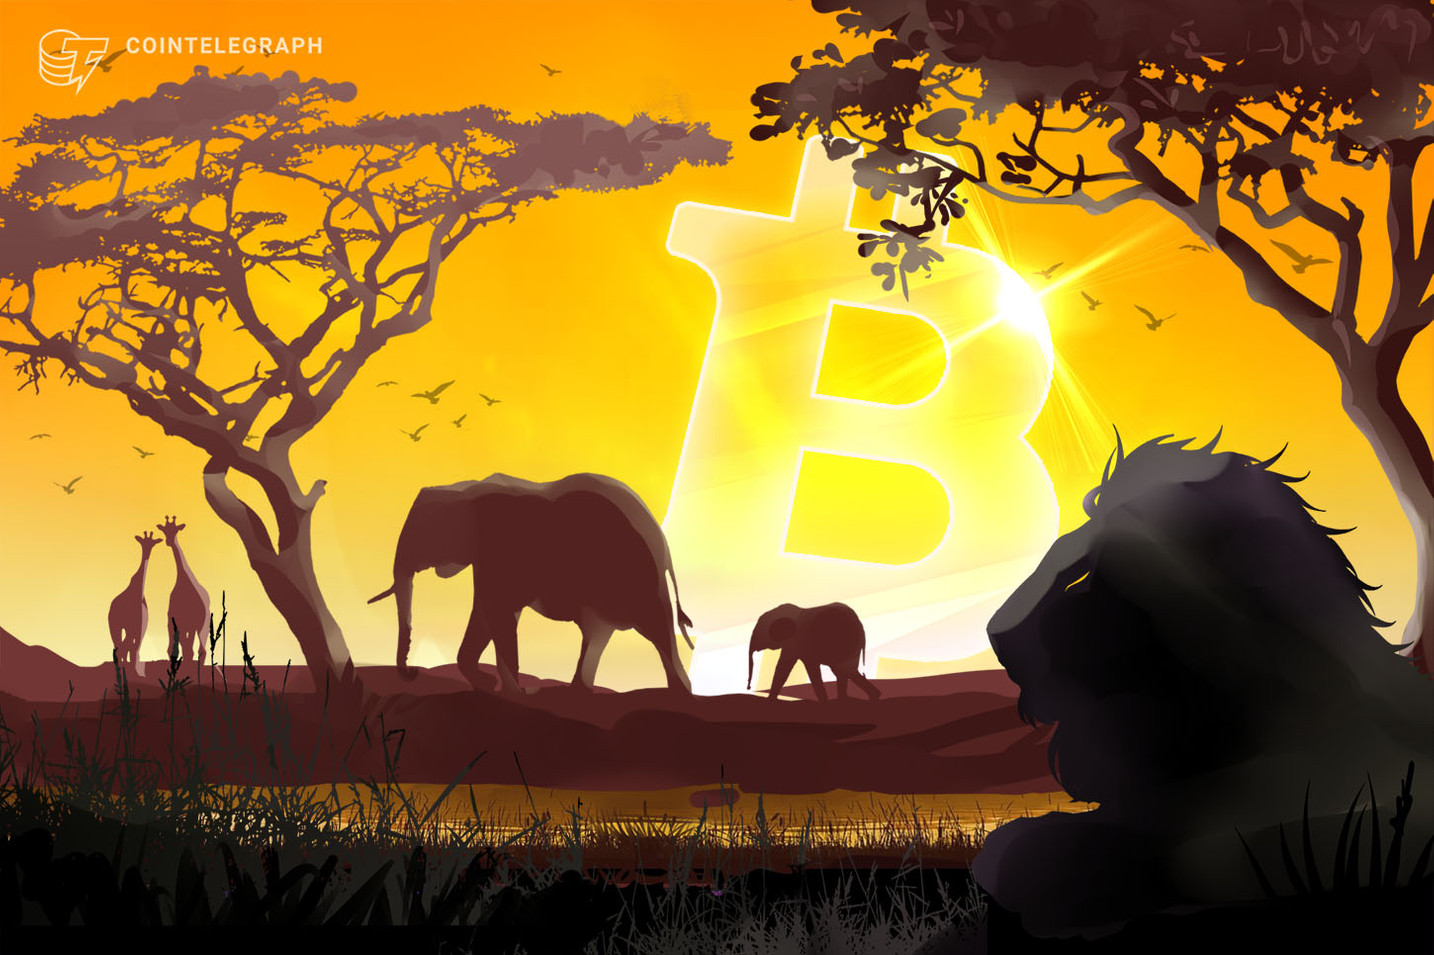 Search Interest for Bitcoin Highest in Africa and South America